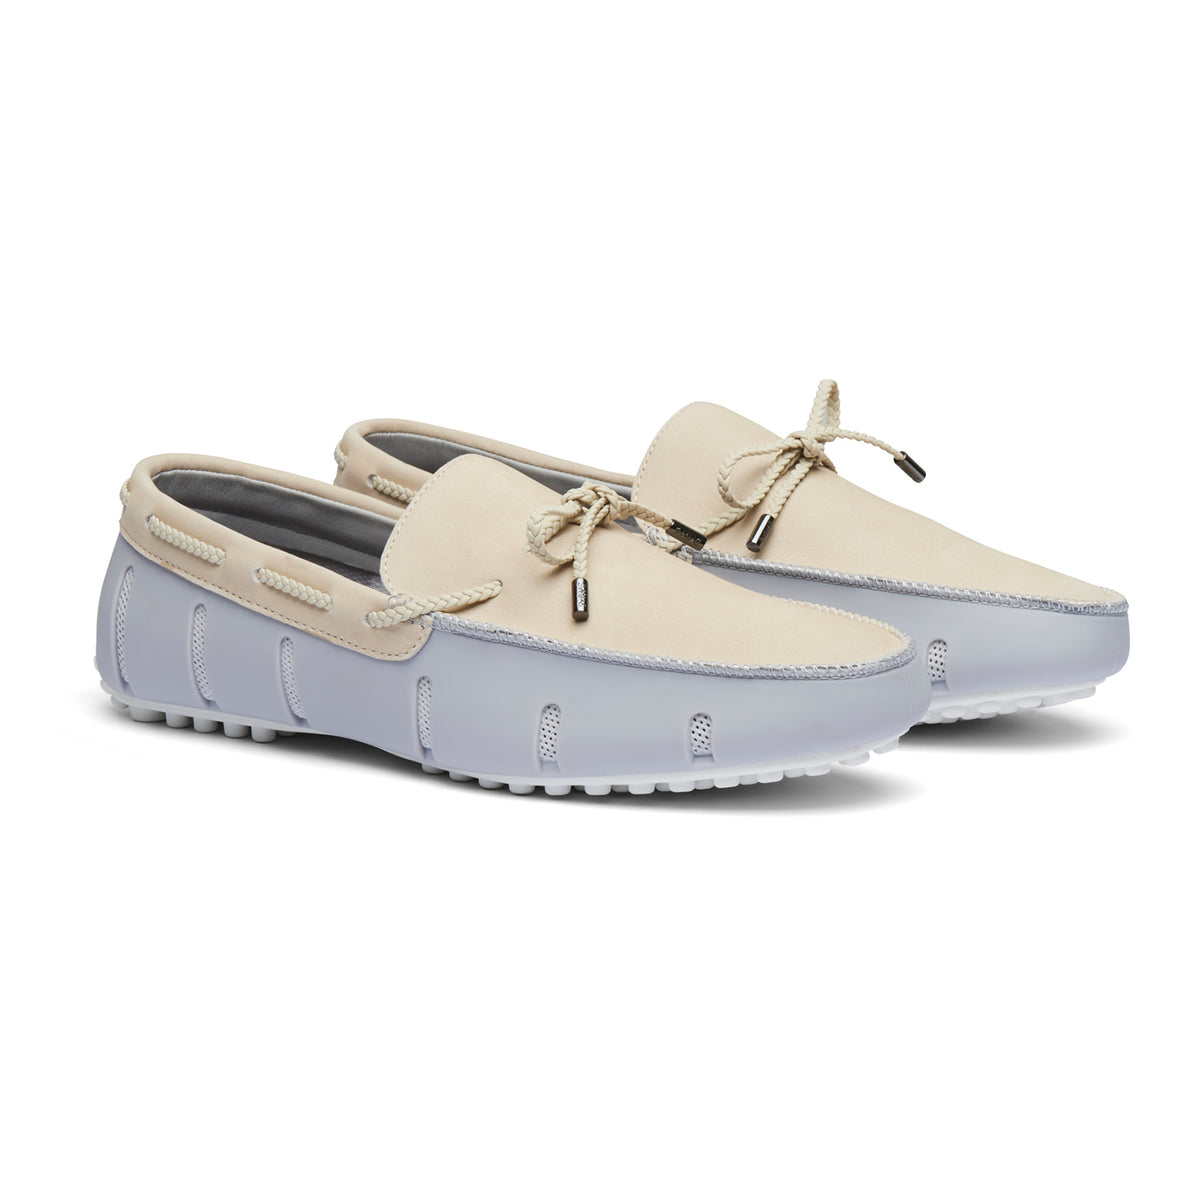 Braided Lace Lux Loafer Driver Nubuck - background::white,variant::Alloy/Pristine